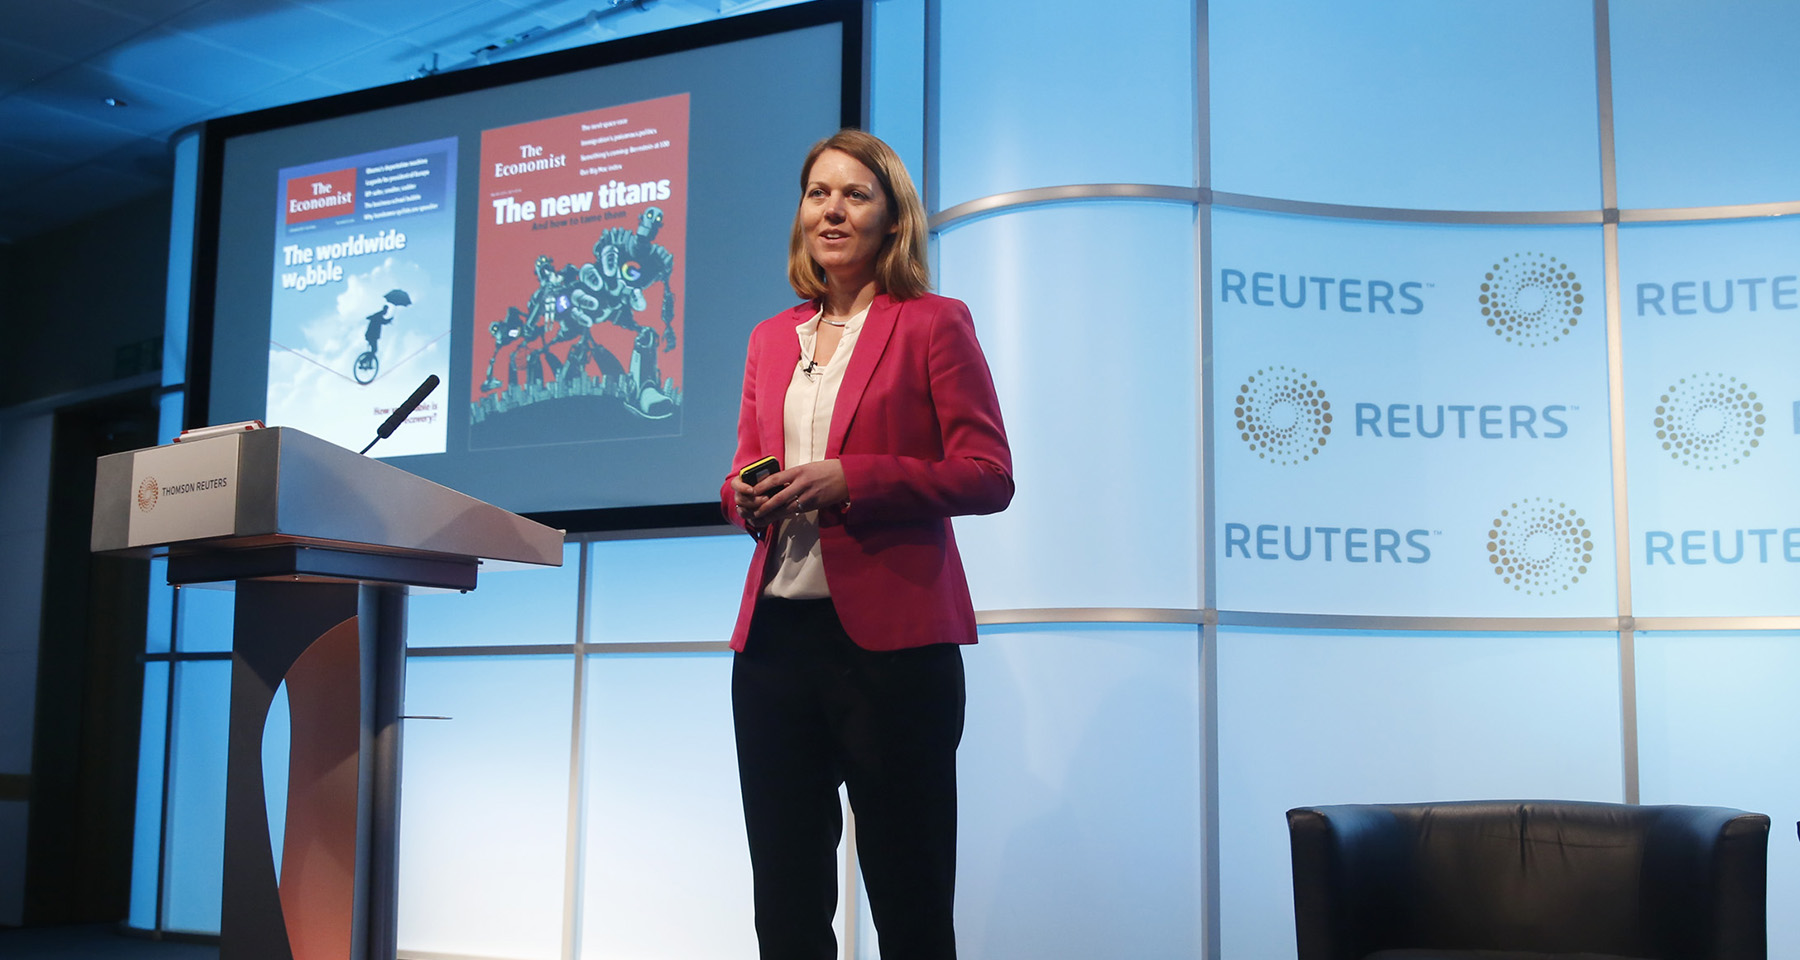 Economist, Wall Street Journal deepen audience understanding, build revenue